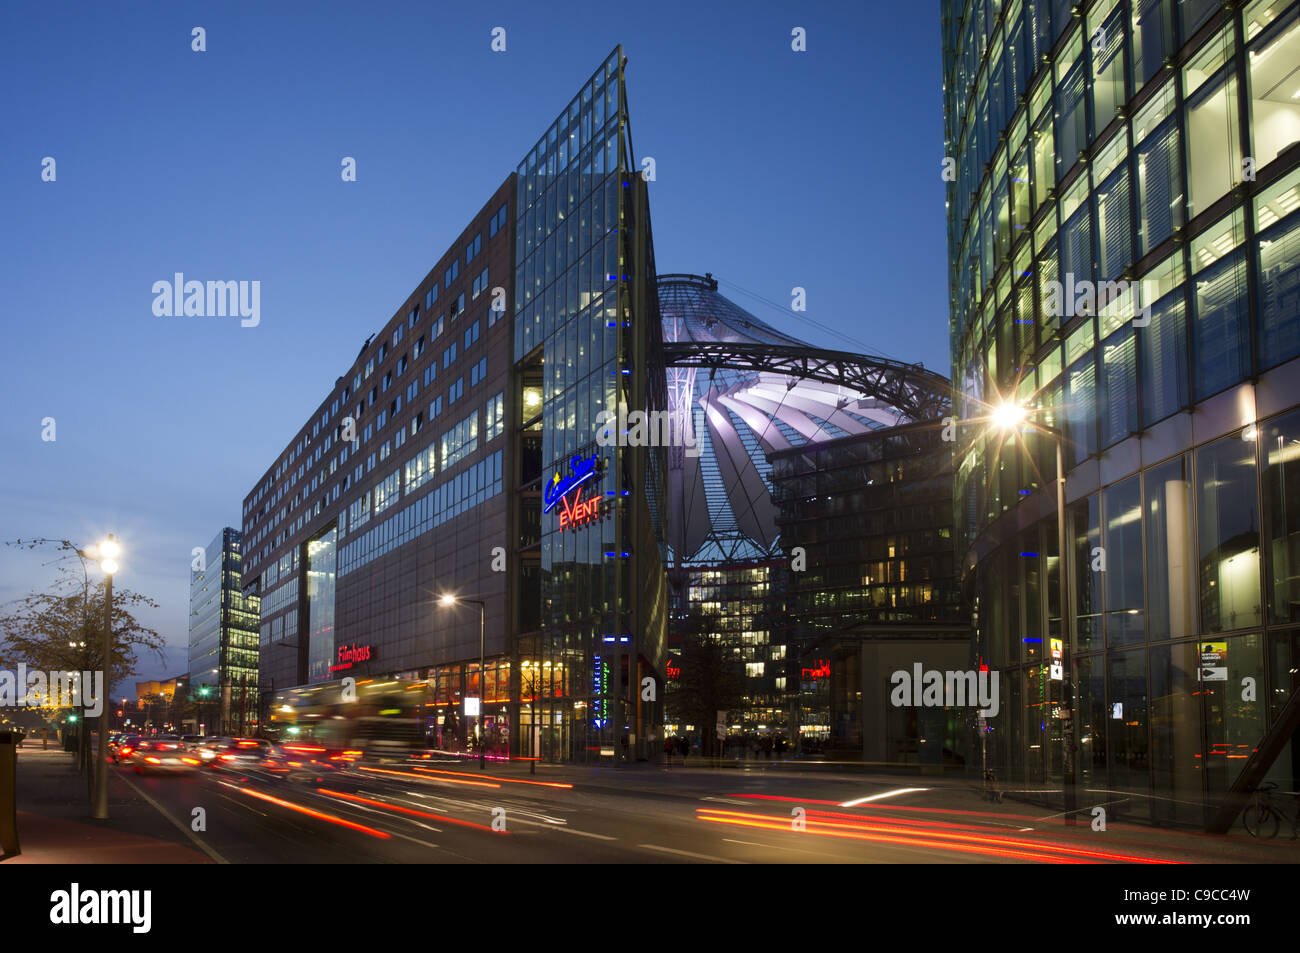 sony center potsdamer platz berlin film museum stock photo royalty free image 40225609 alamy. Black Bedroom Furniture Sets. Home Design Ideas